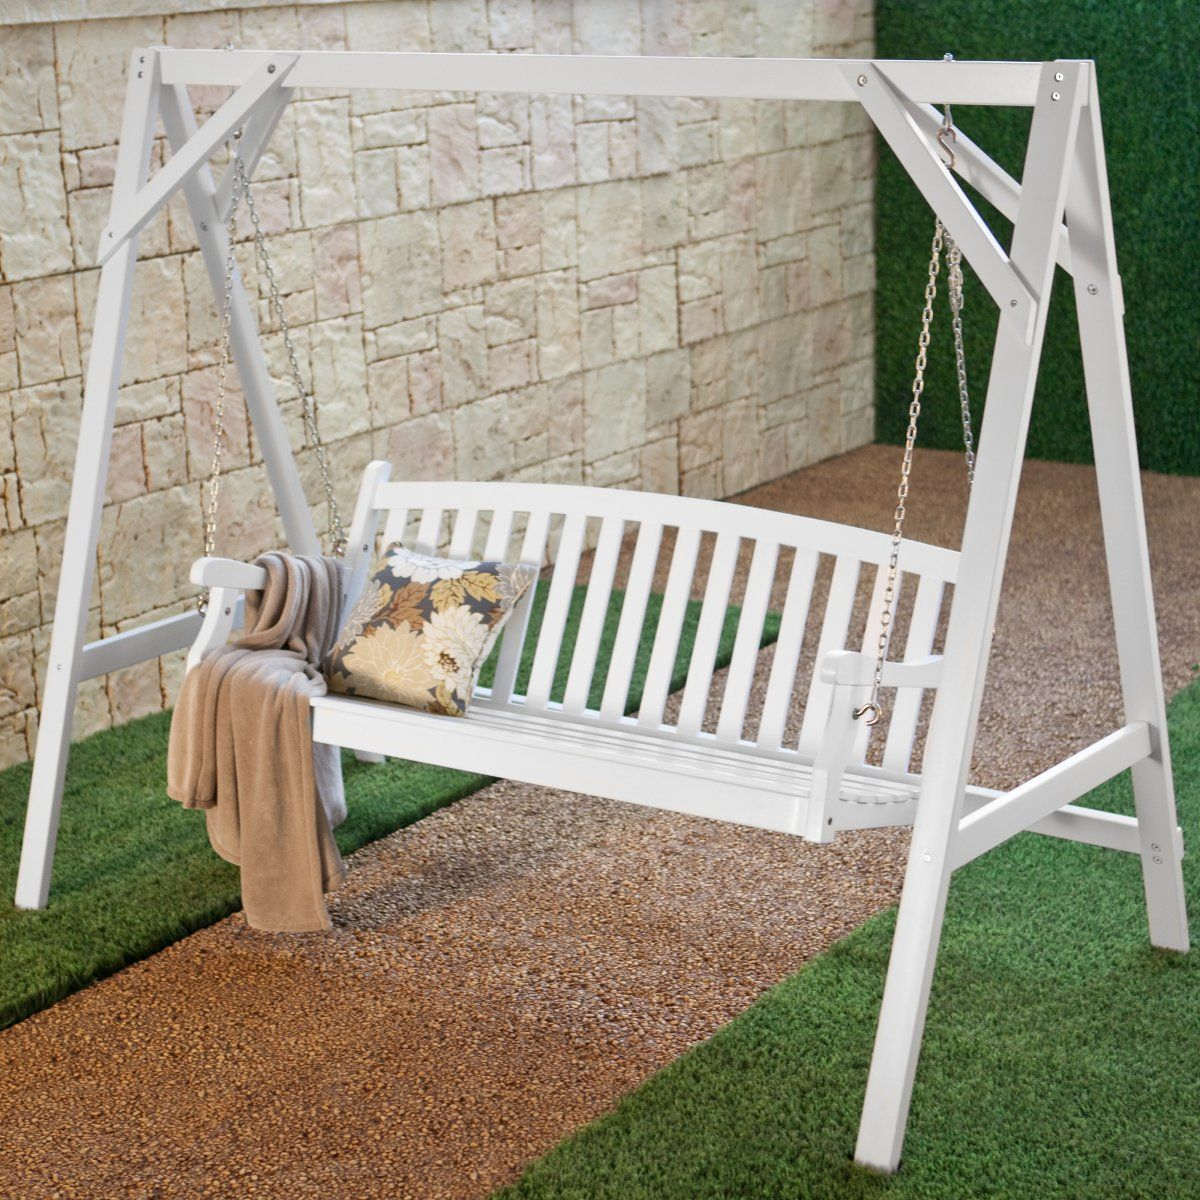 Wood porch swing stand white durable longlasting eucalyptus